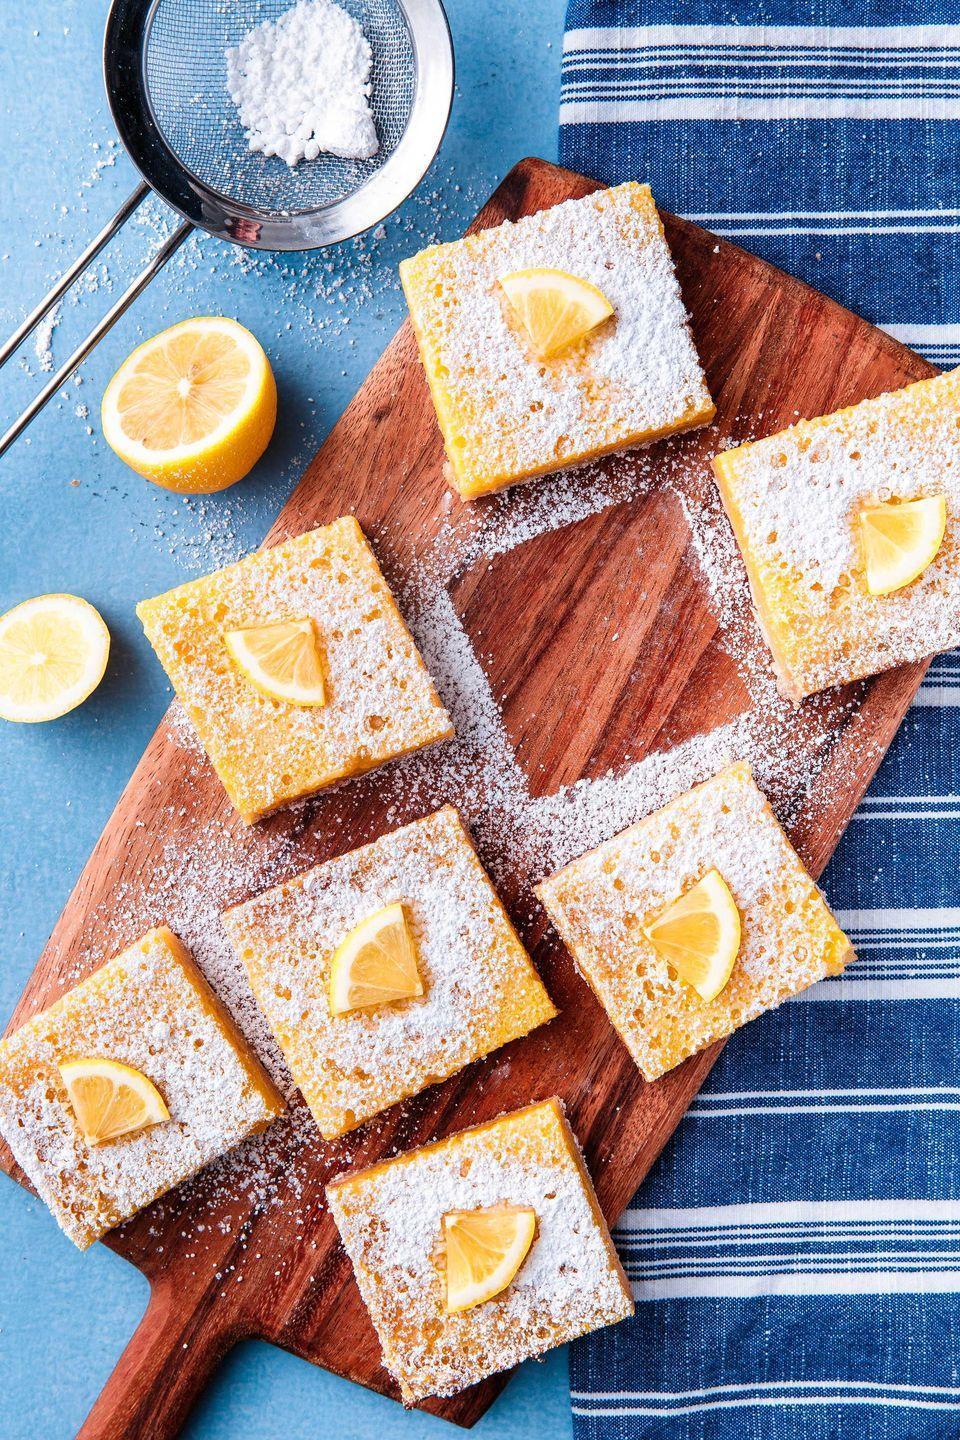 """<p>Pucker up — these babies are sweet and citrusy.</p><p>Get the recipe from <a href=""""https://www.delish.com/cooking/recipes/a52125/easy-lemon-bars-recipe/"""" rel=""""nofollow noopener"""" target=""""_blank"""" data-ylk=""""slk:Delish"""" class=""""link rapid-noclick-resp"""">Delish</a>. </p>"""